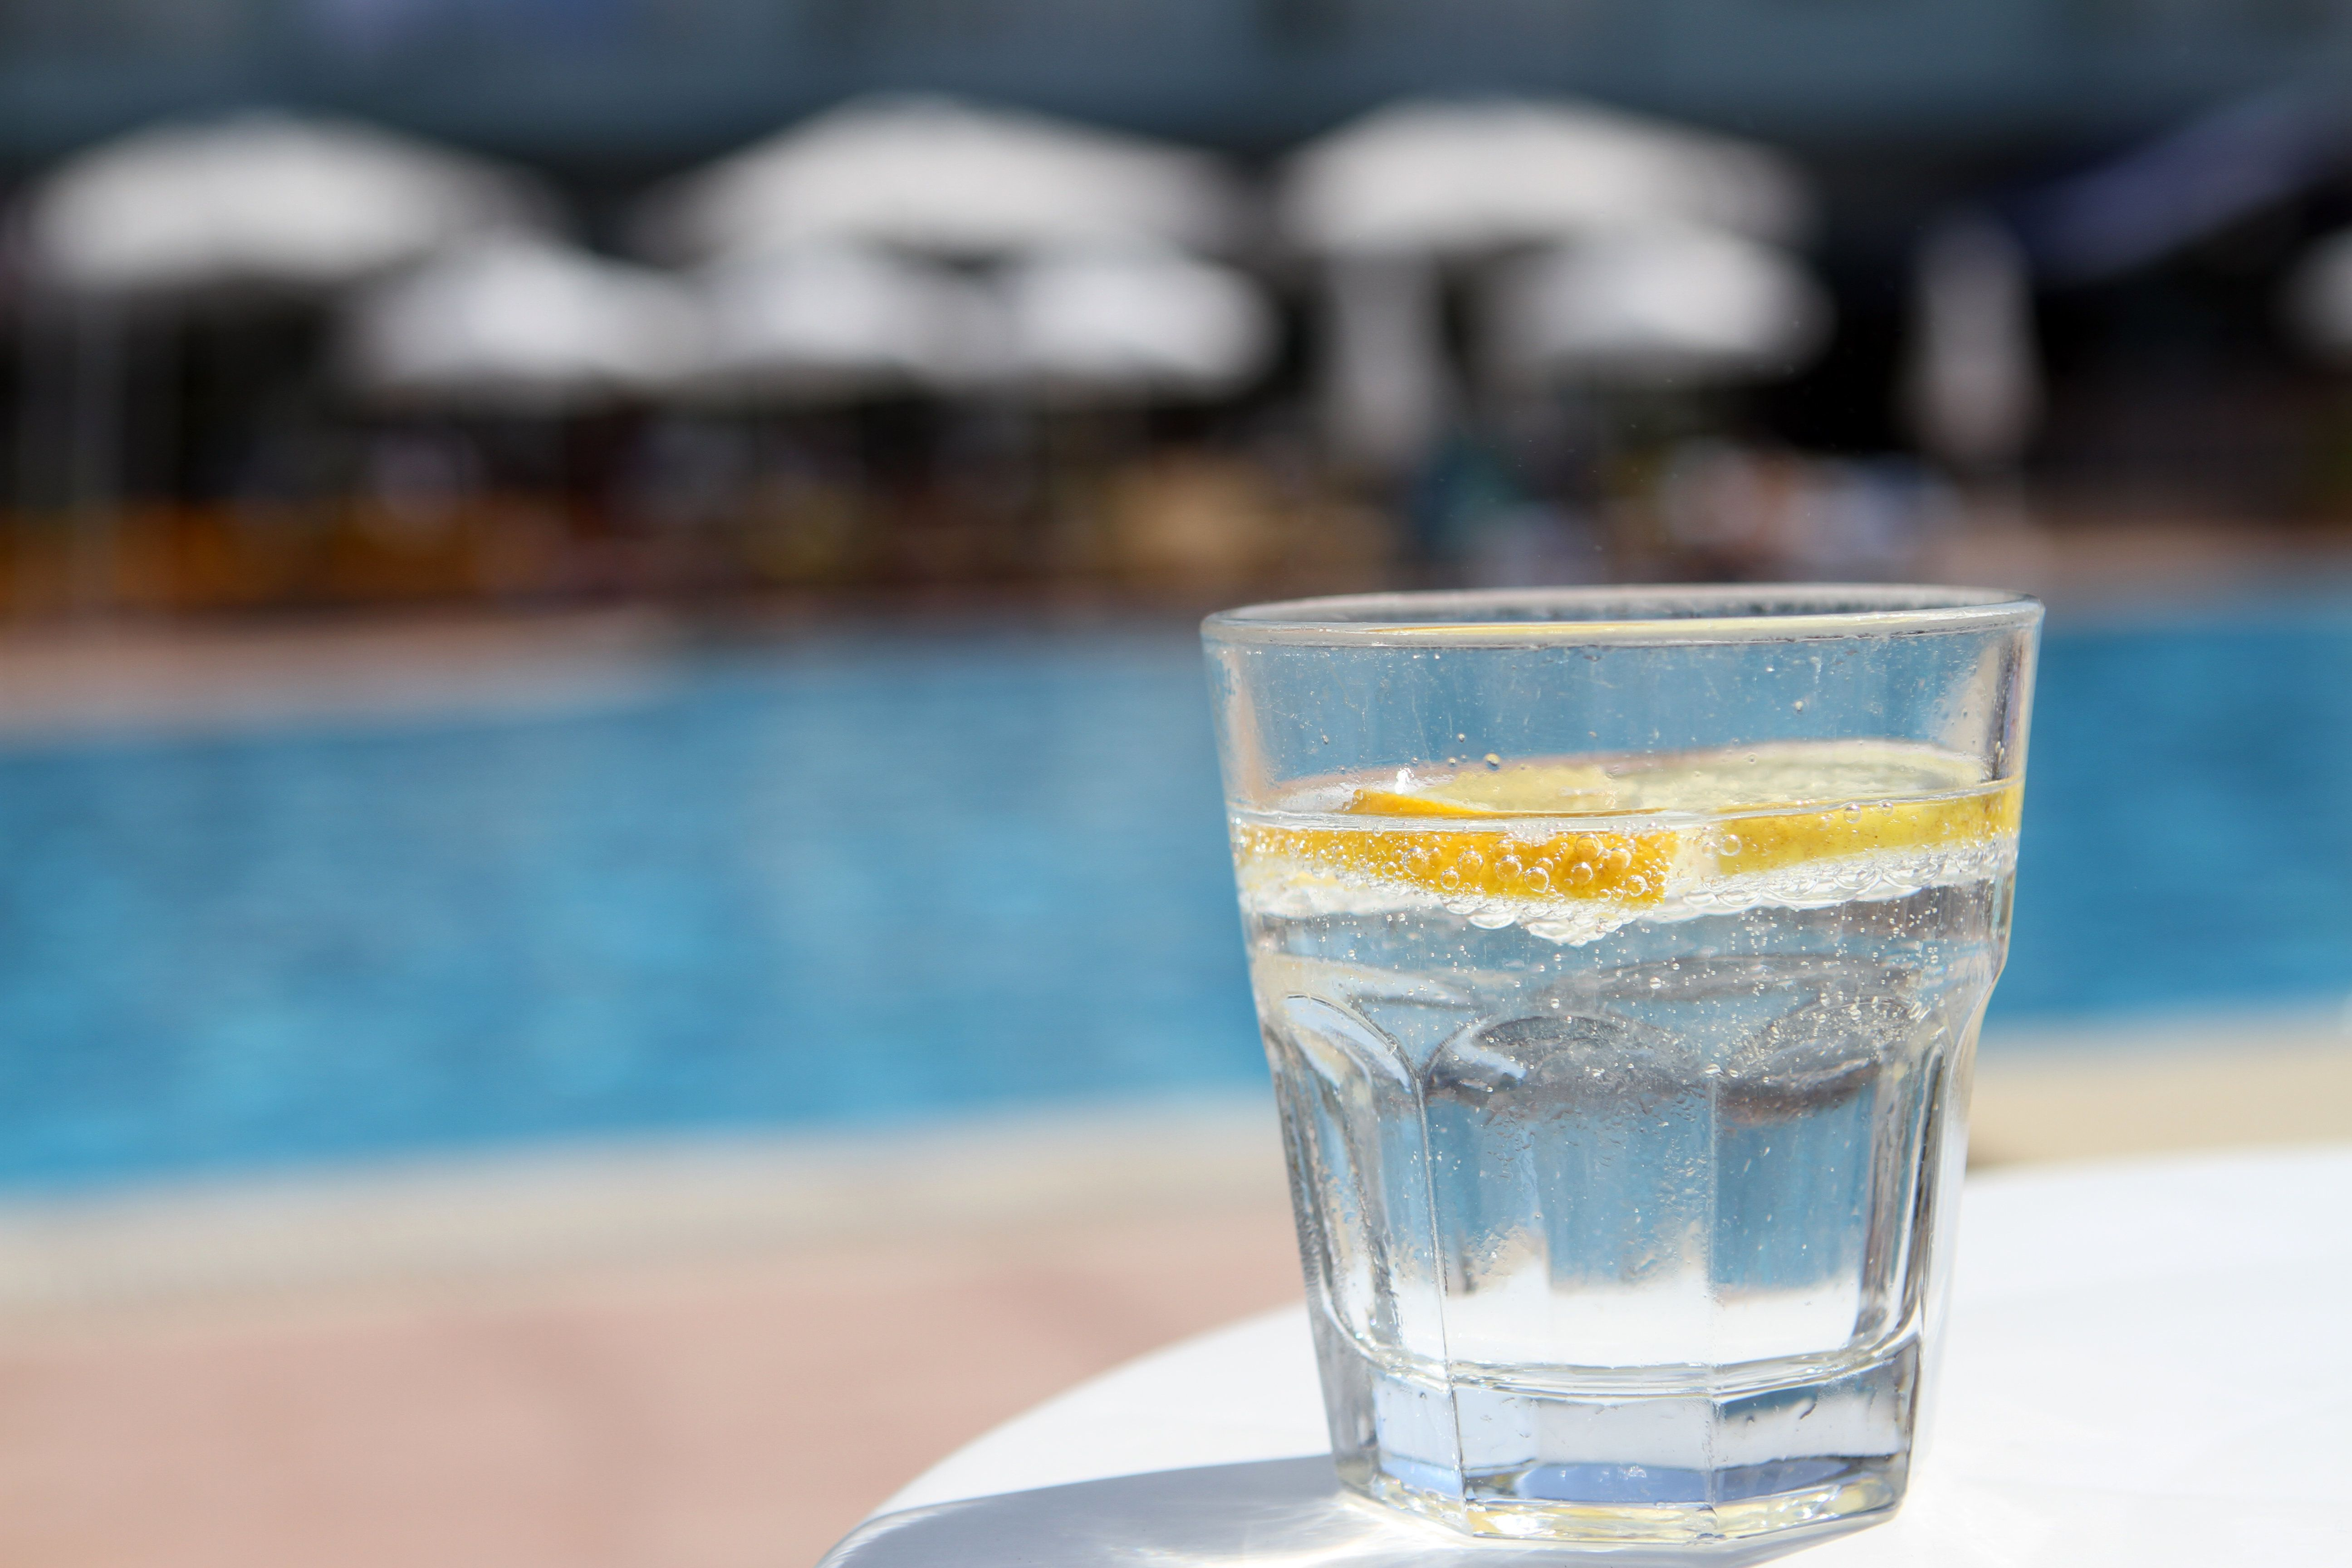 The Alarming Way Sparkling Water Can Damage Your